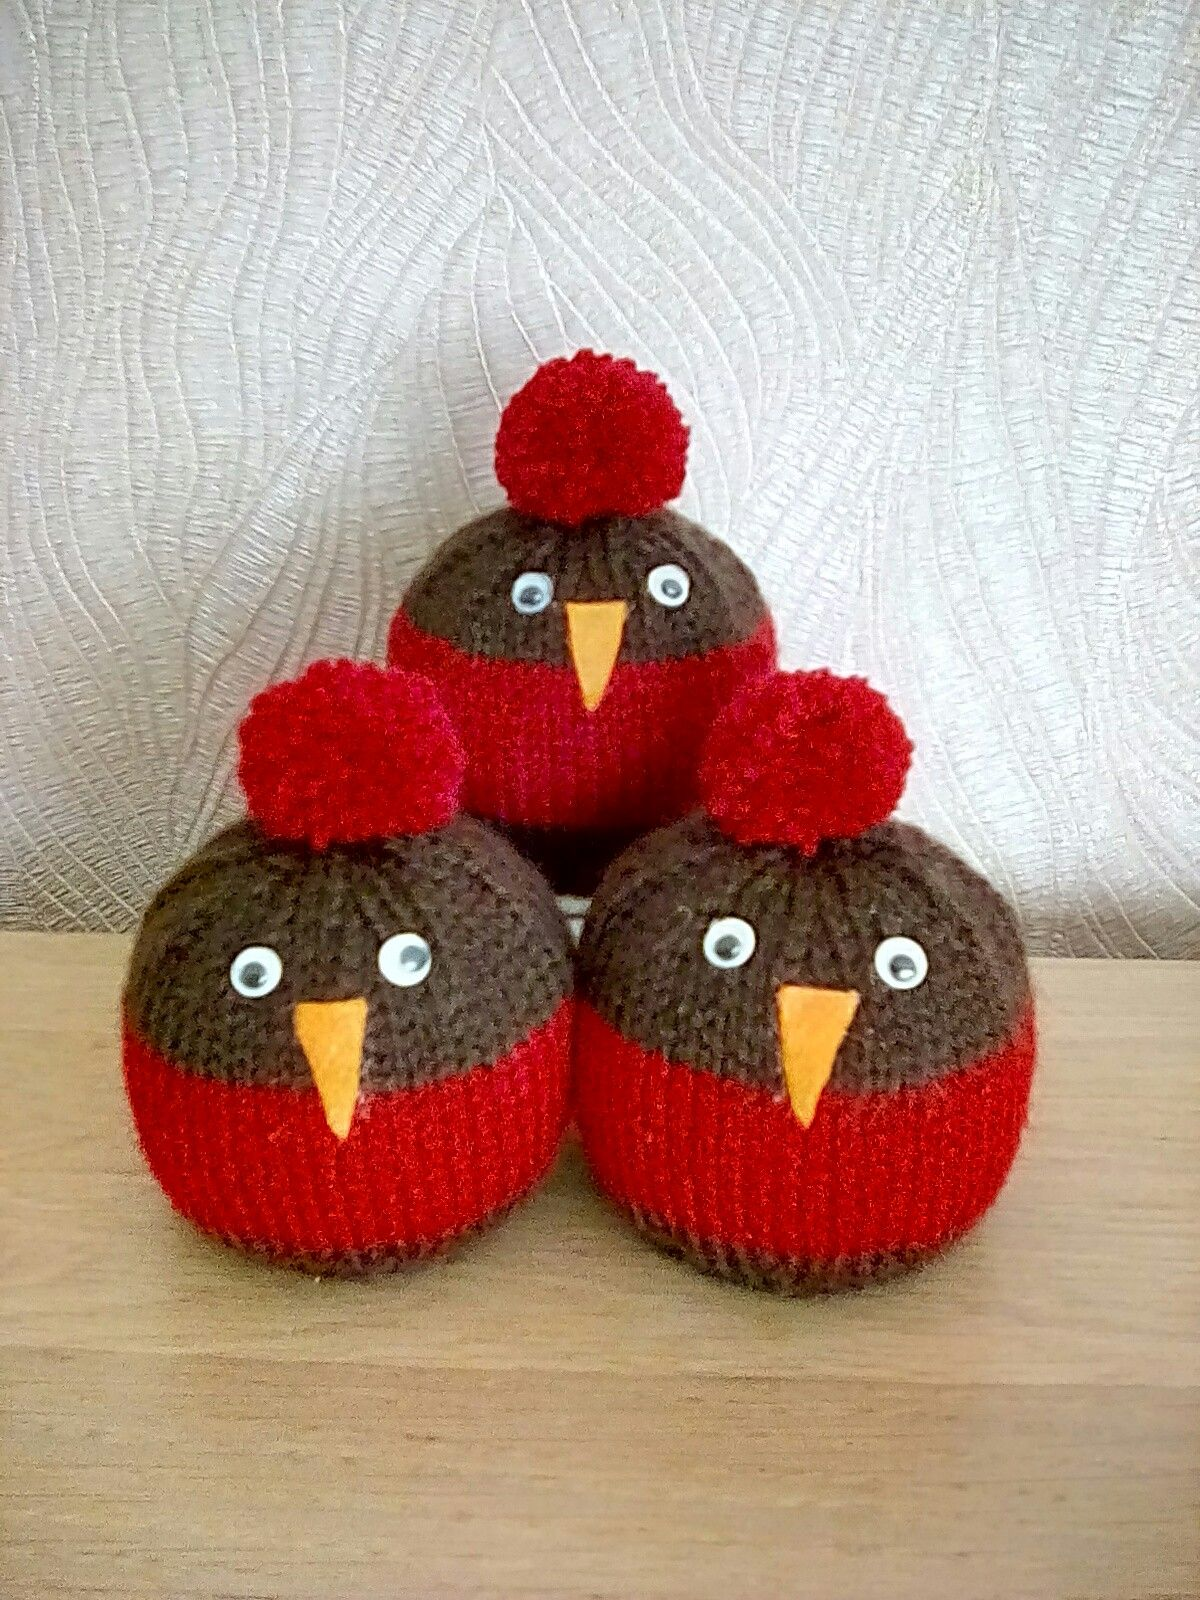 REINDEER  CHOCOLATE ORANGE COVER  KNITTING PATTERN /& CRAFT KIT FOR MAKING TWO